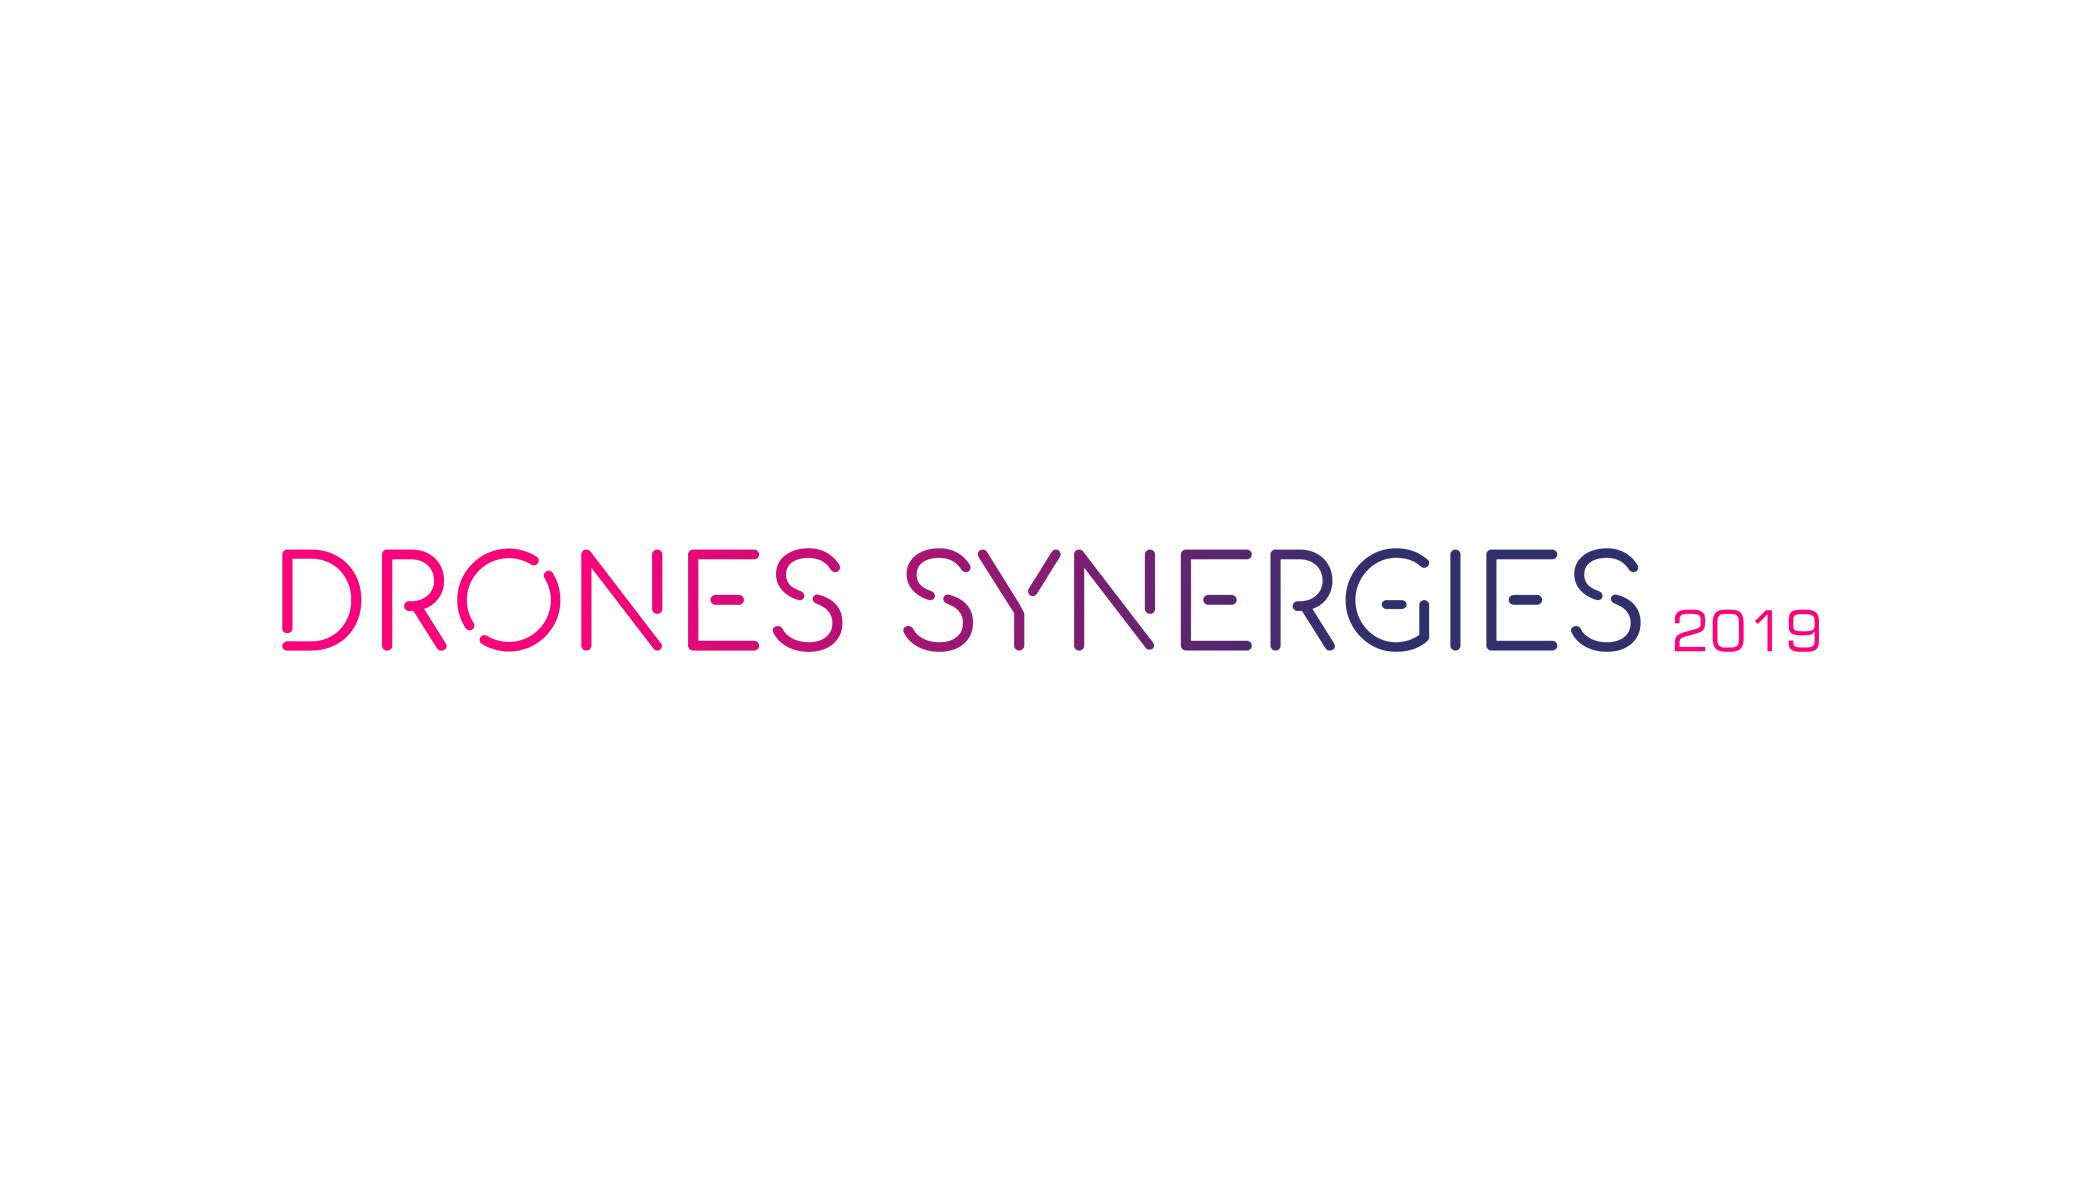 Pix4D at Drone Synergies 2019